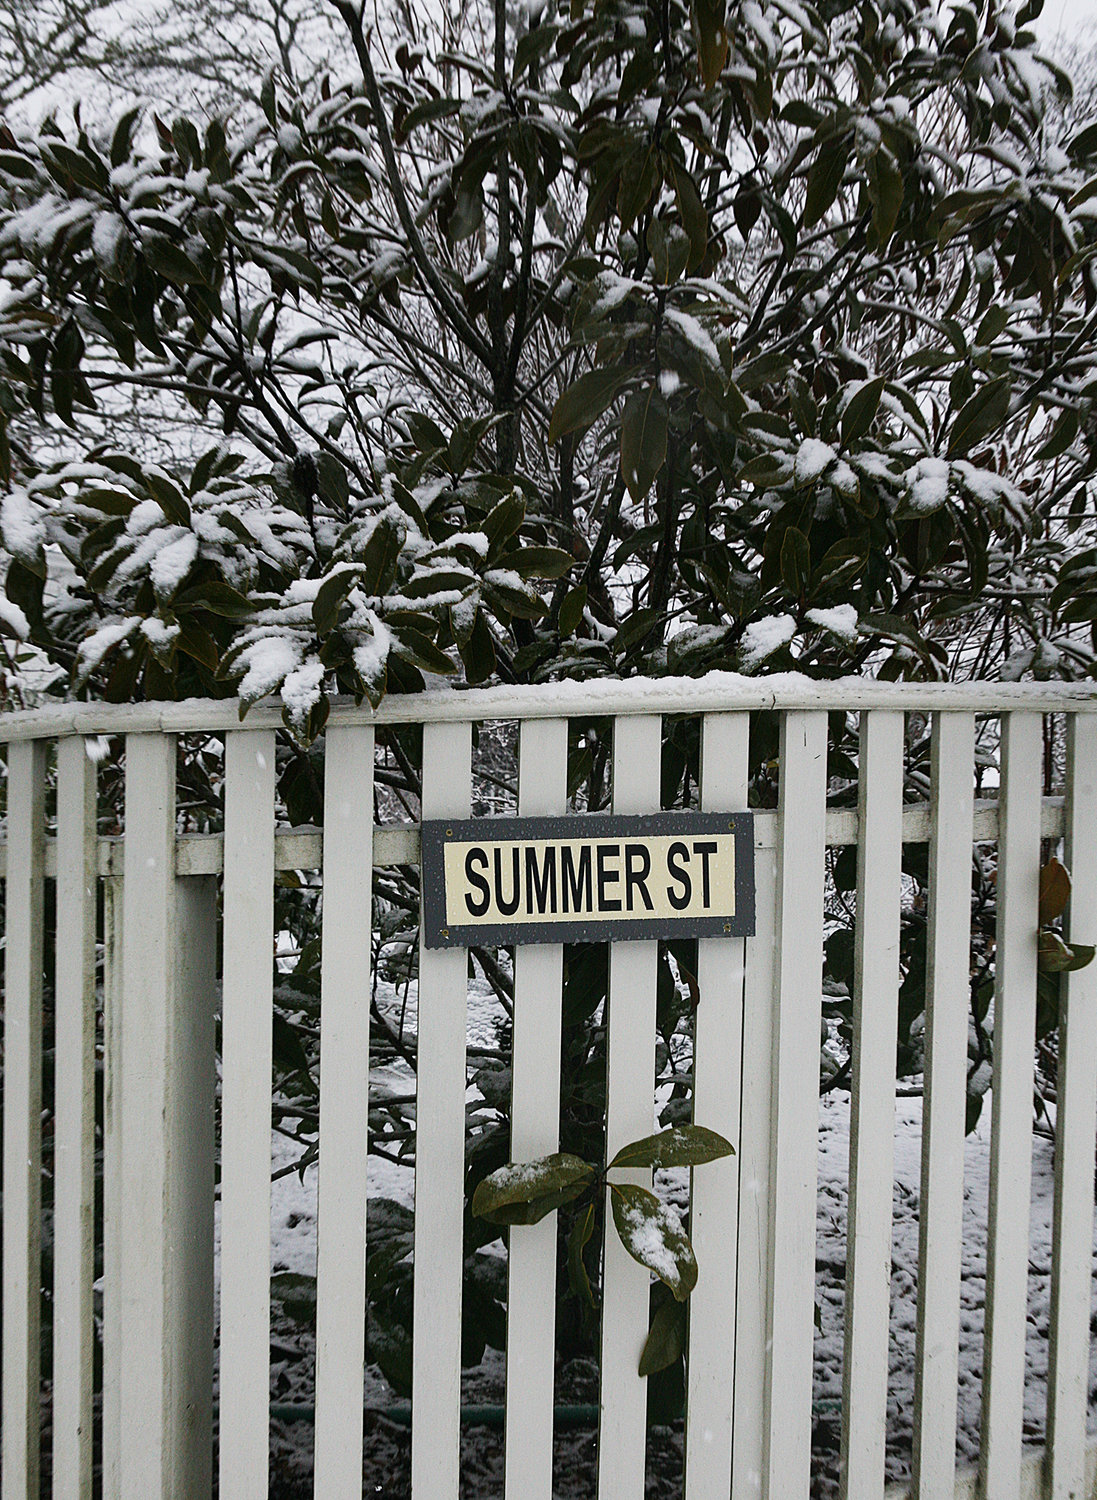 WINTER SCENES -- February 7, 2021 -- Is it summer yet? Snow on a tree at the intersection of Pleasant Street and Summer Street during Sunday's snow storm. Photo by Ray K. Saunders